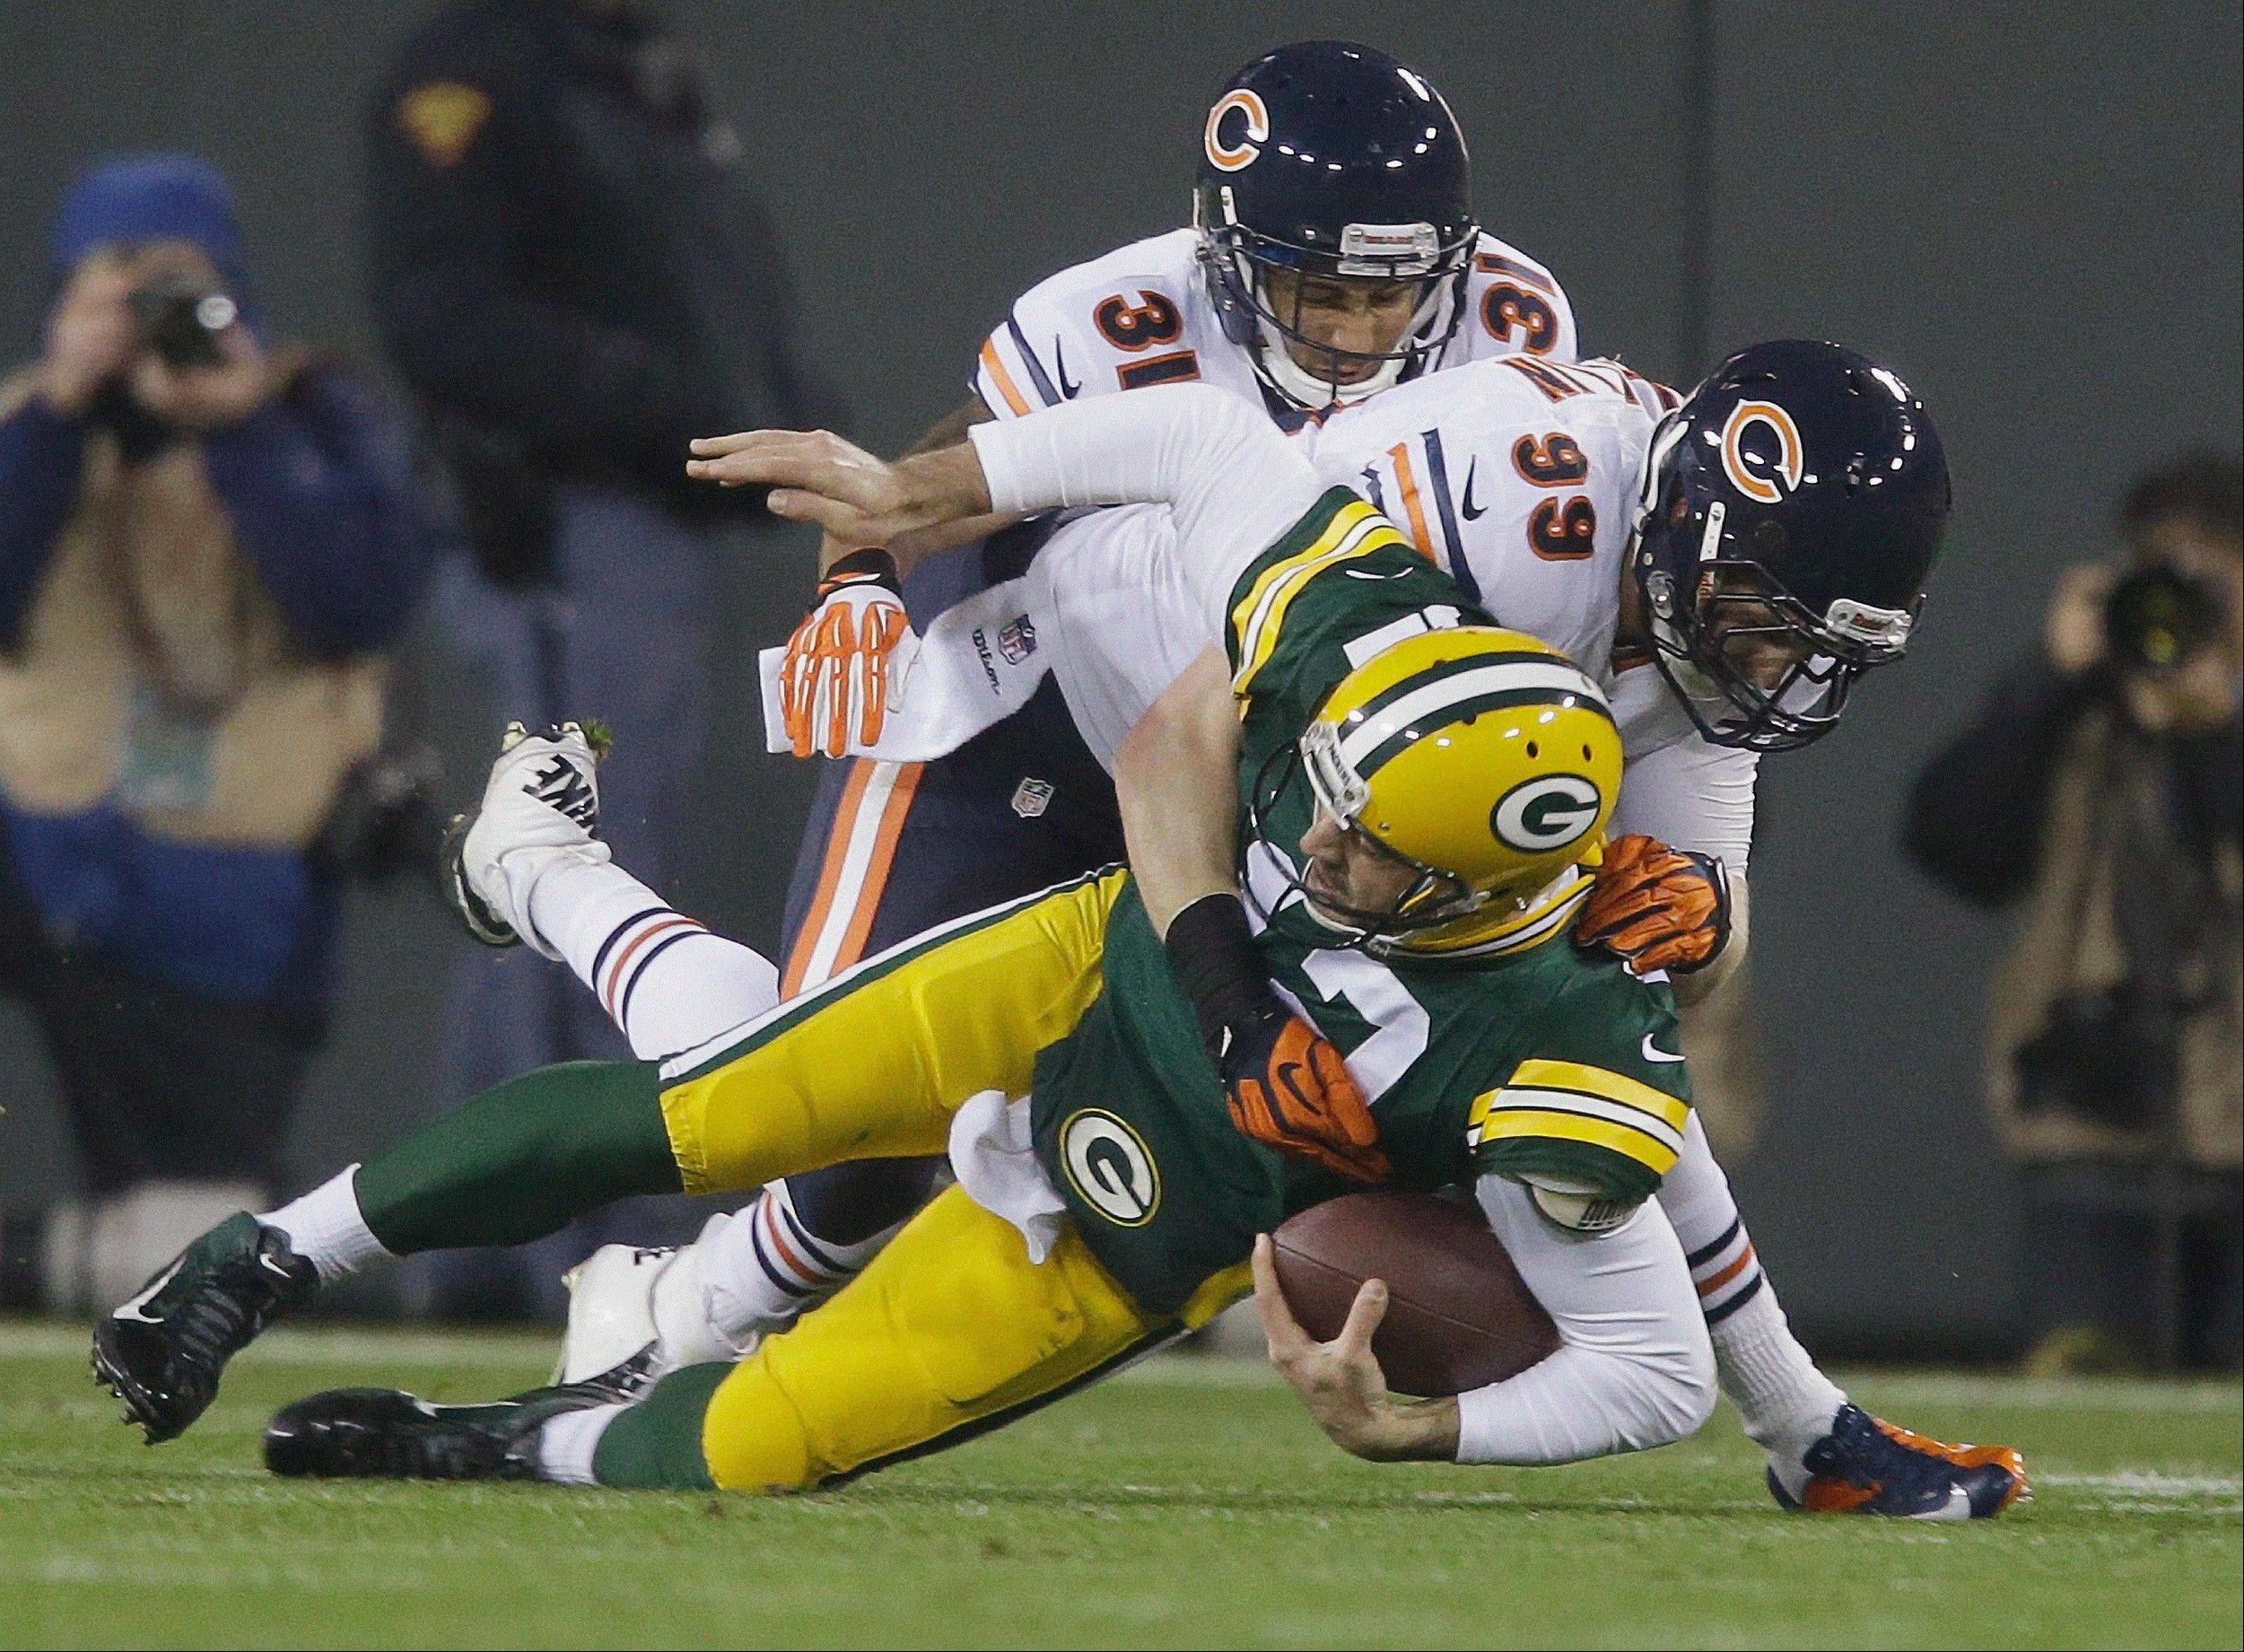 Green Bay Packers quarterback Aaron Rodgers is sacked by Chicago Bears' Shea McClellin (99) and Isaiah Frey (31) during the first half .